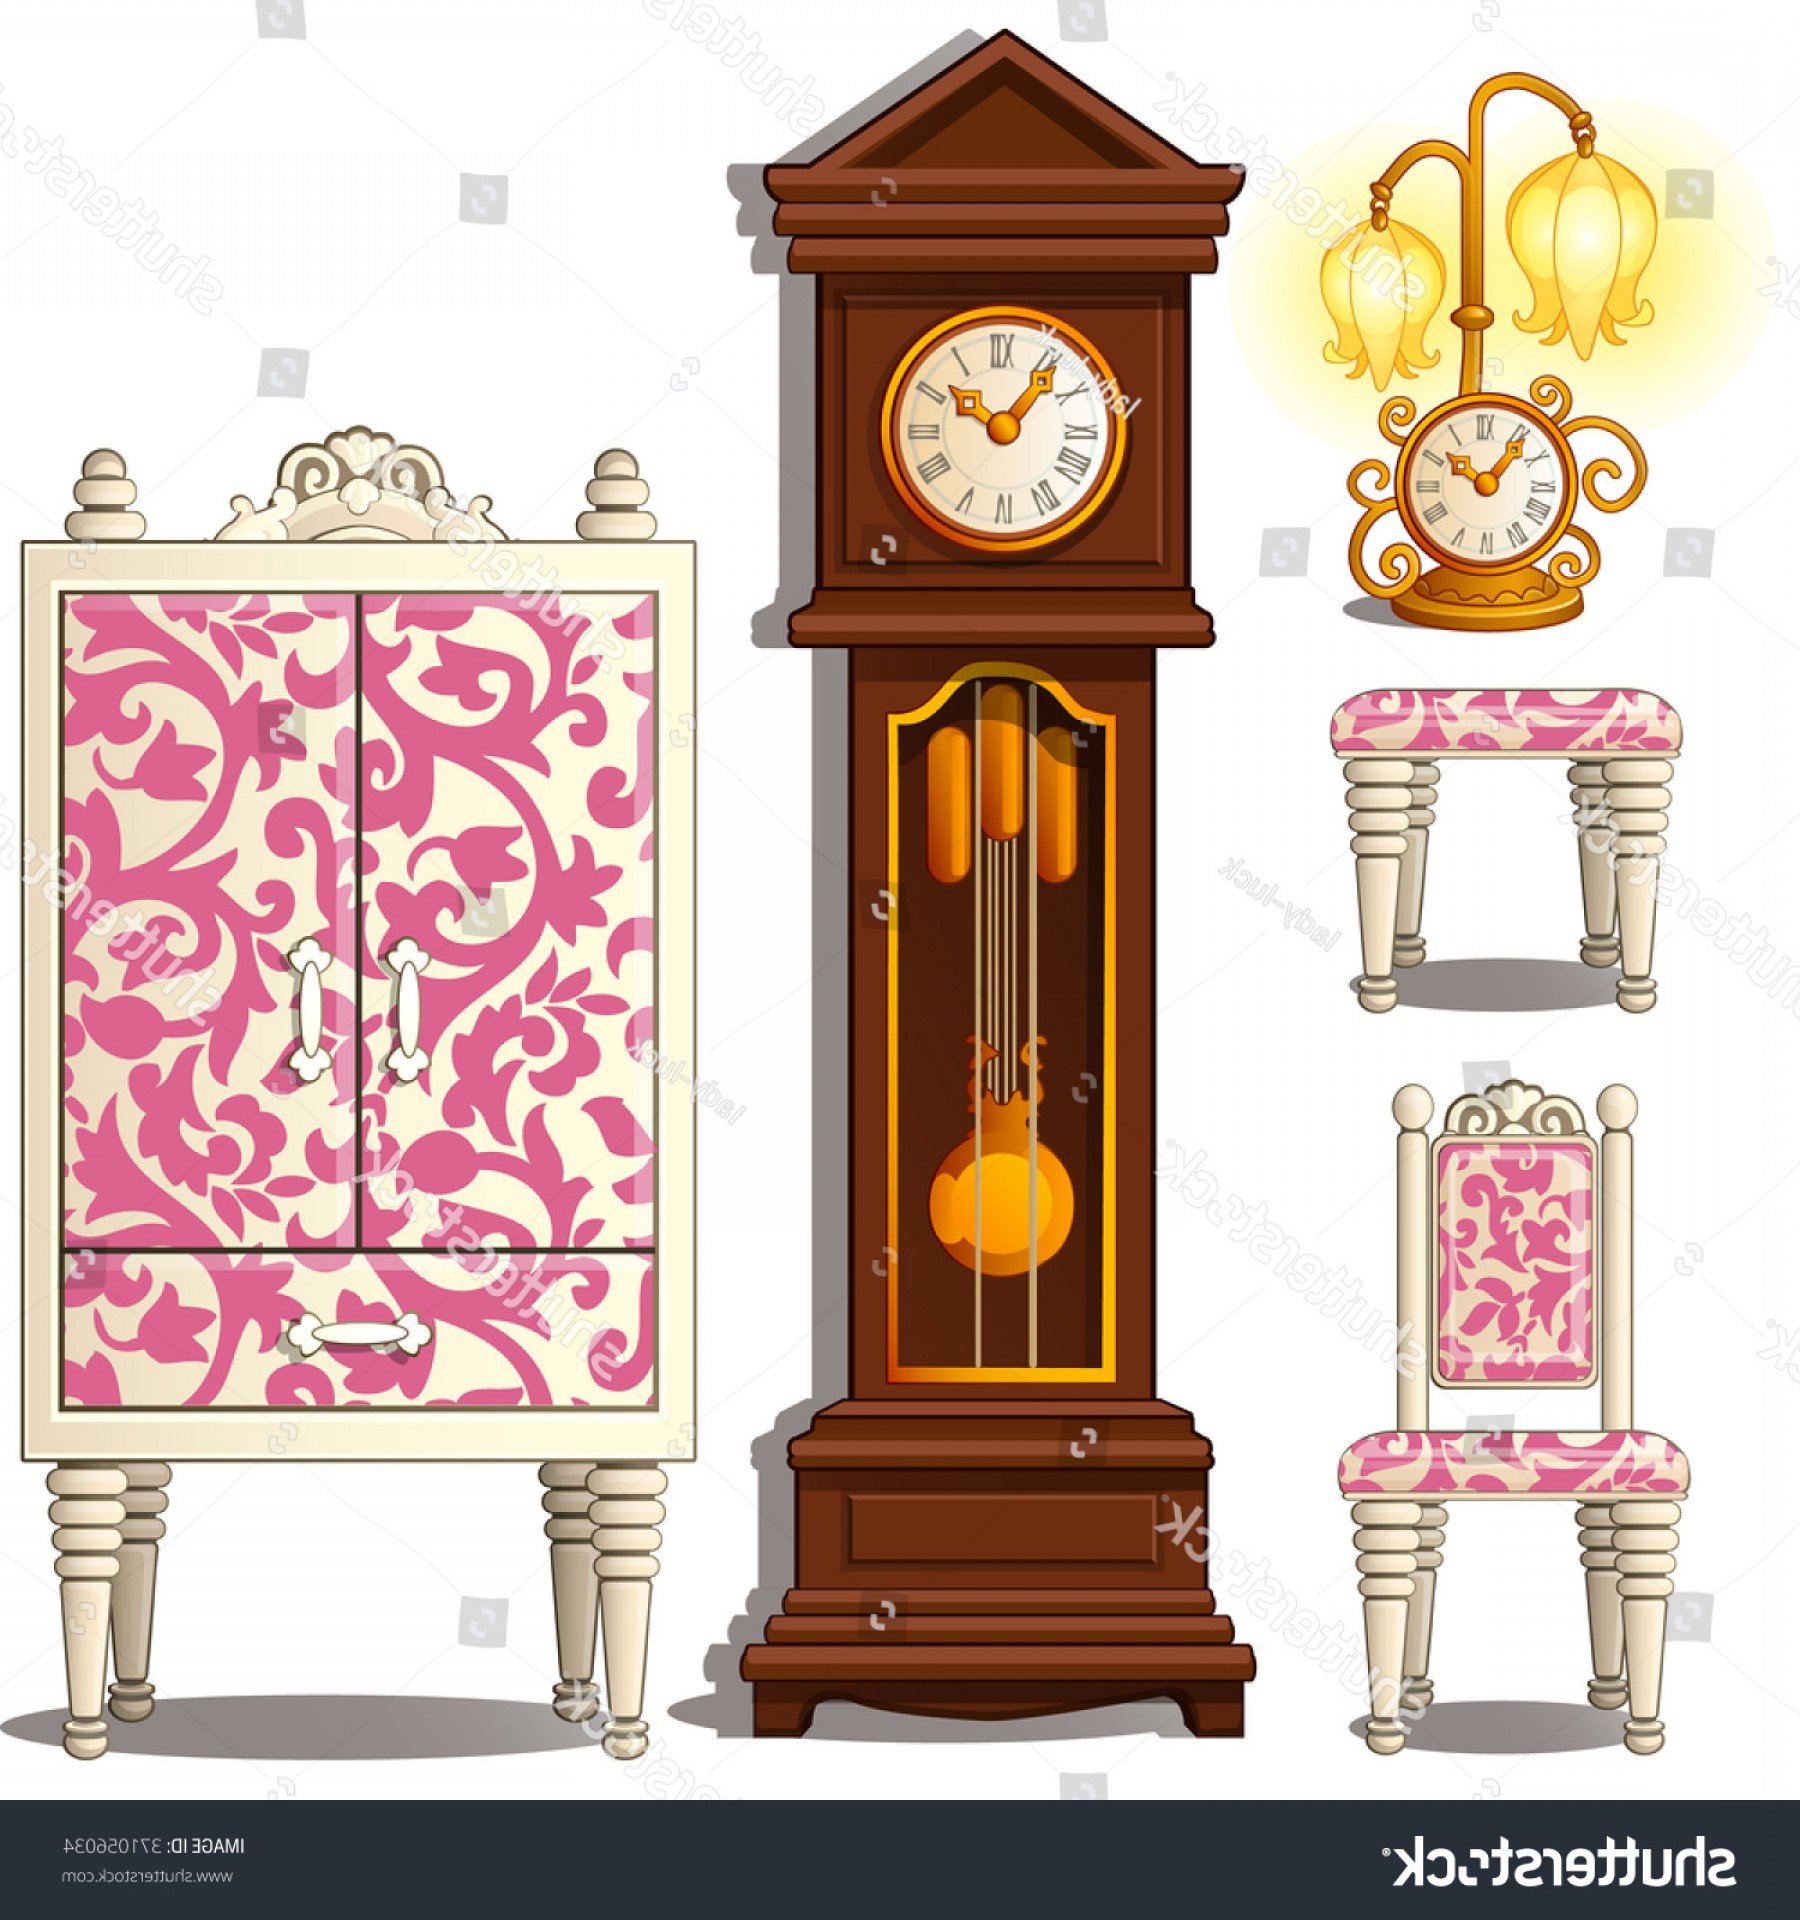 Old Floor Clock Vector: Grandfather Clock Vintage Furniture Isolated On